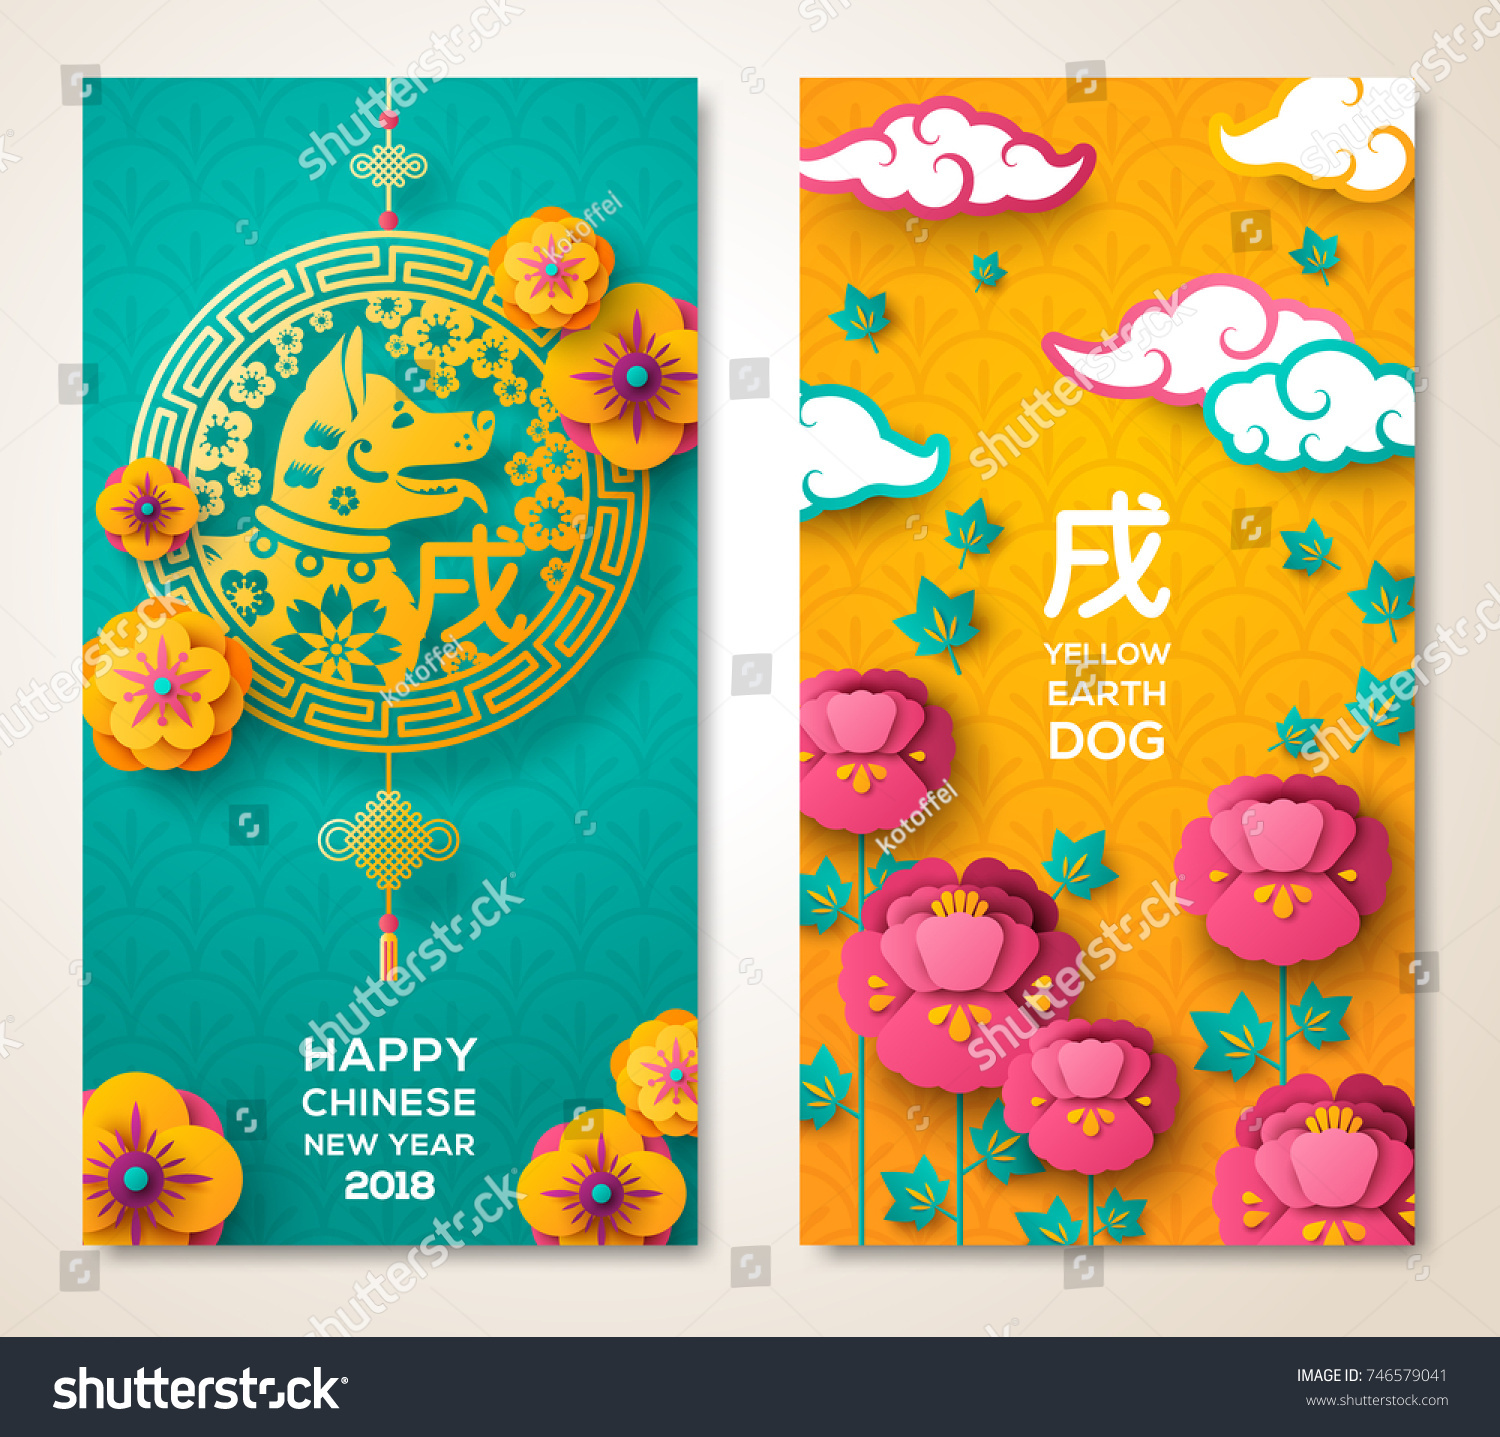 2018 Chinese New Year Greeting Card Stock Vector 746579041